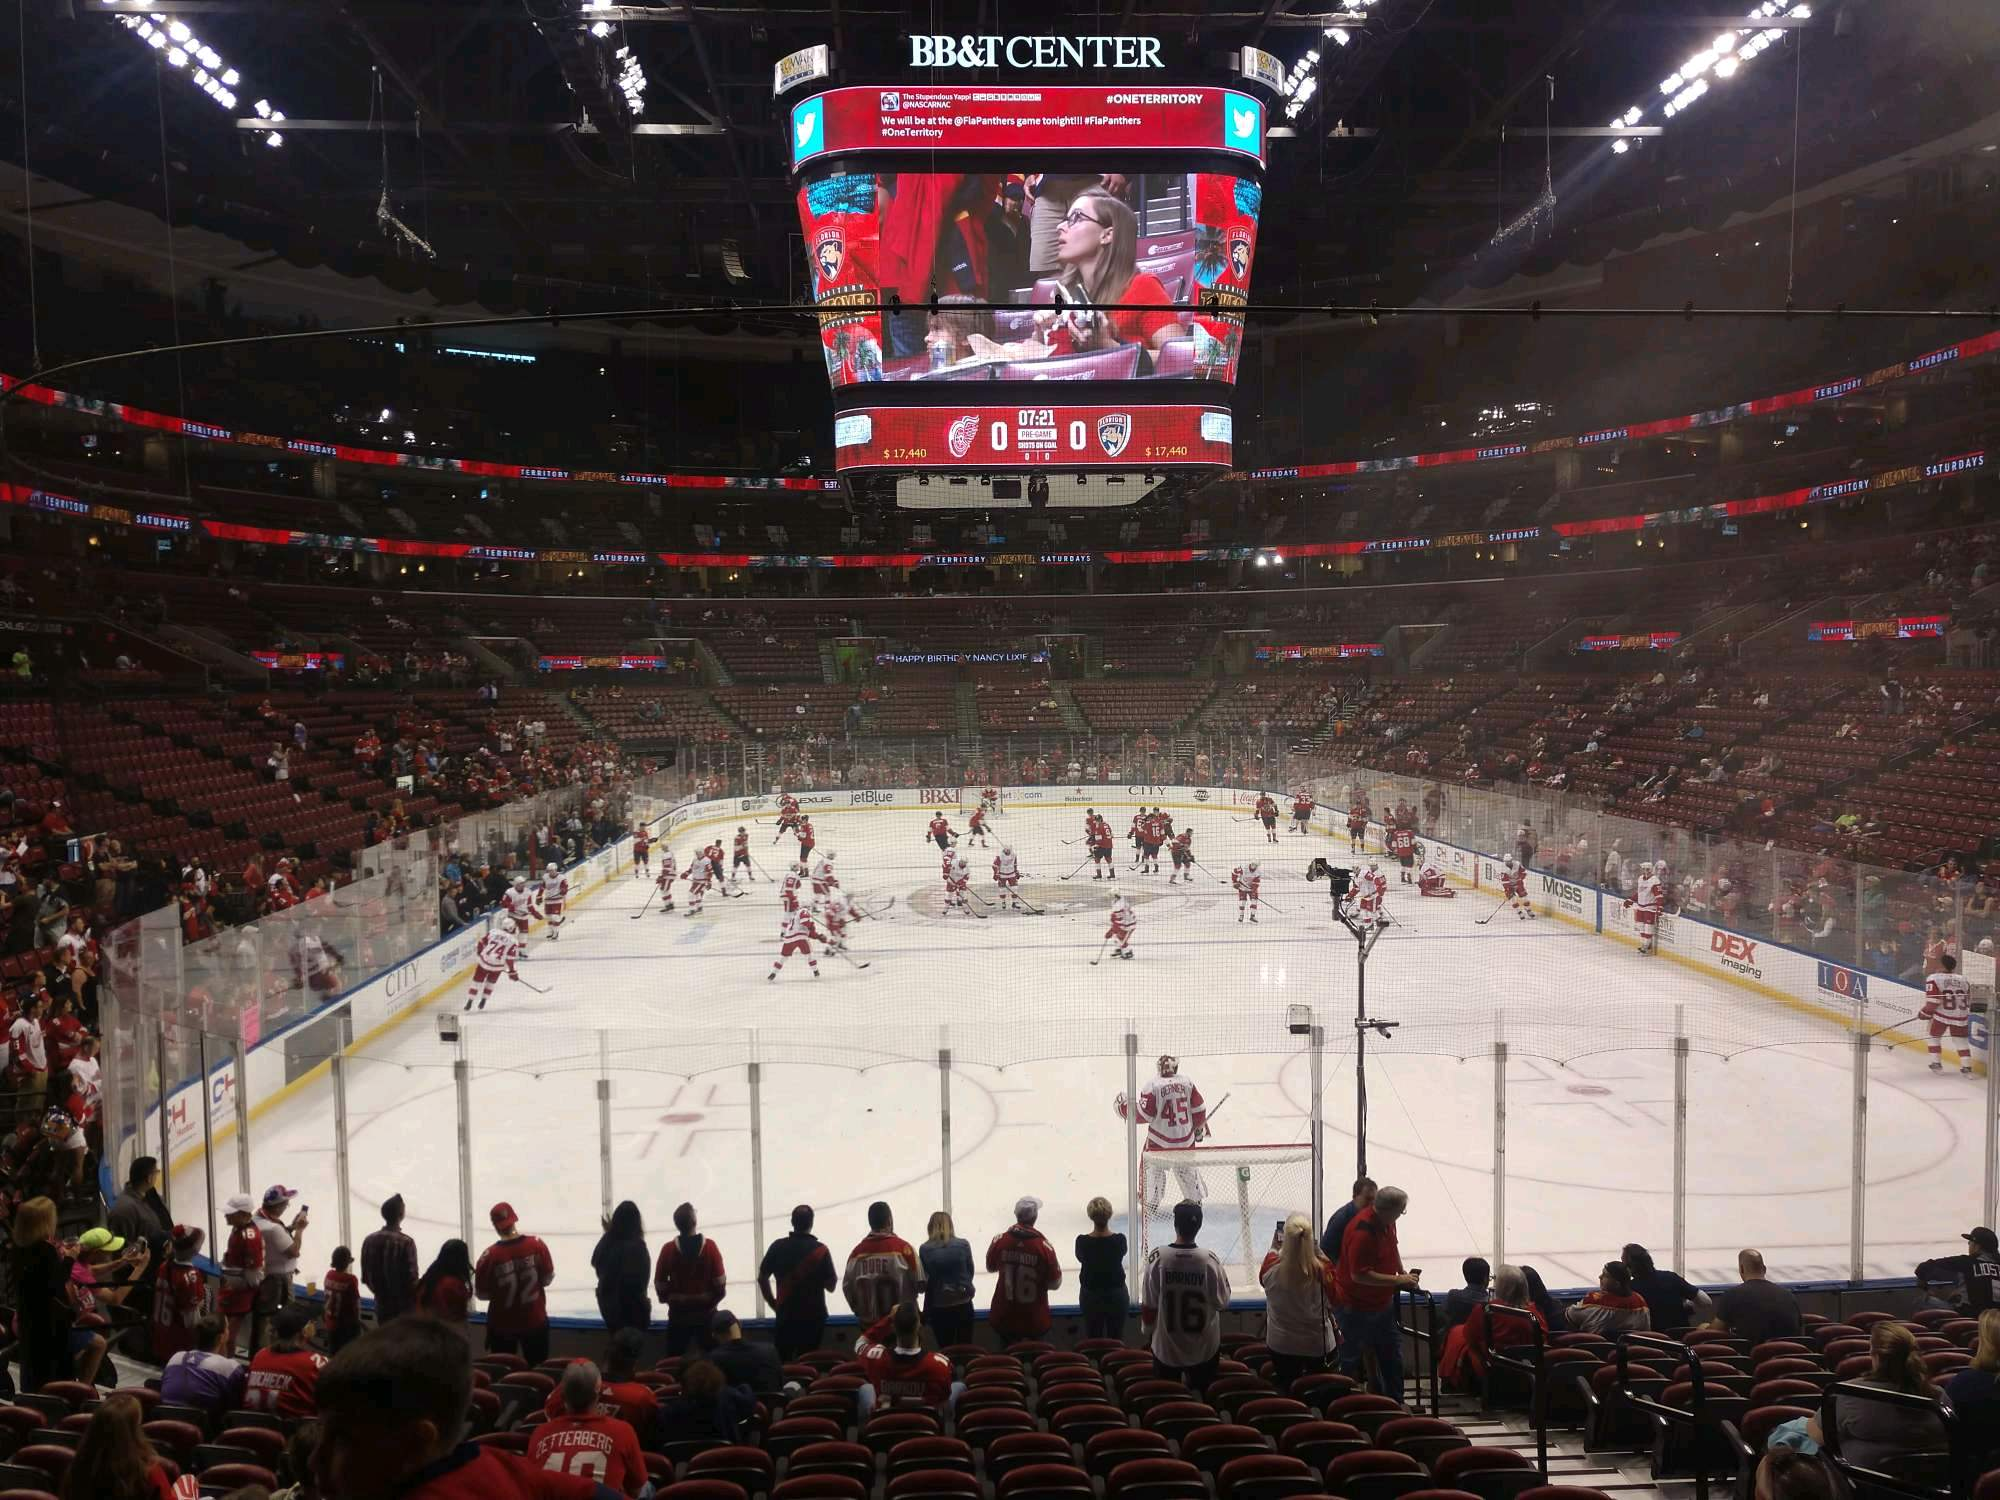 BB&T Center Section 128 Row 15 Seat 6